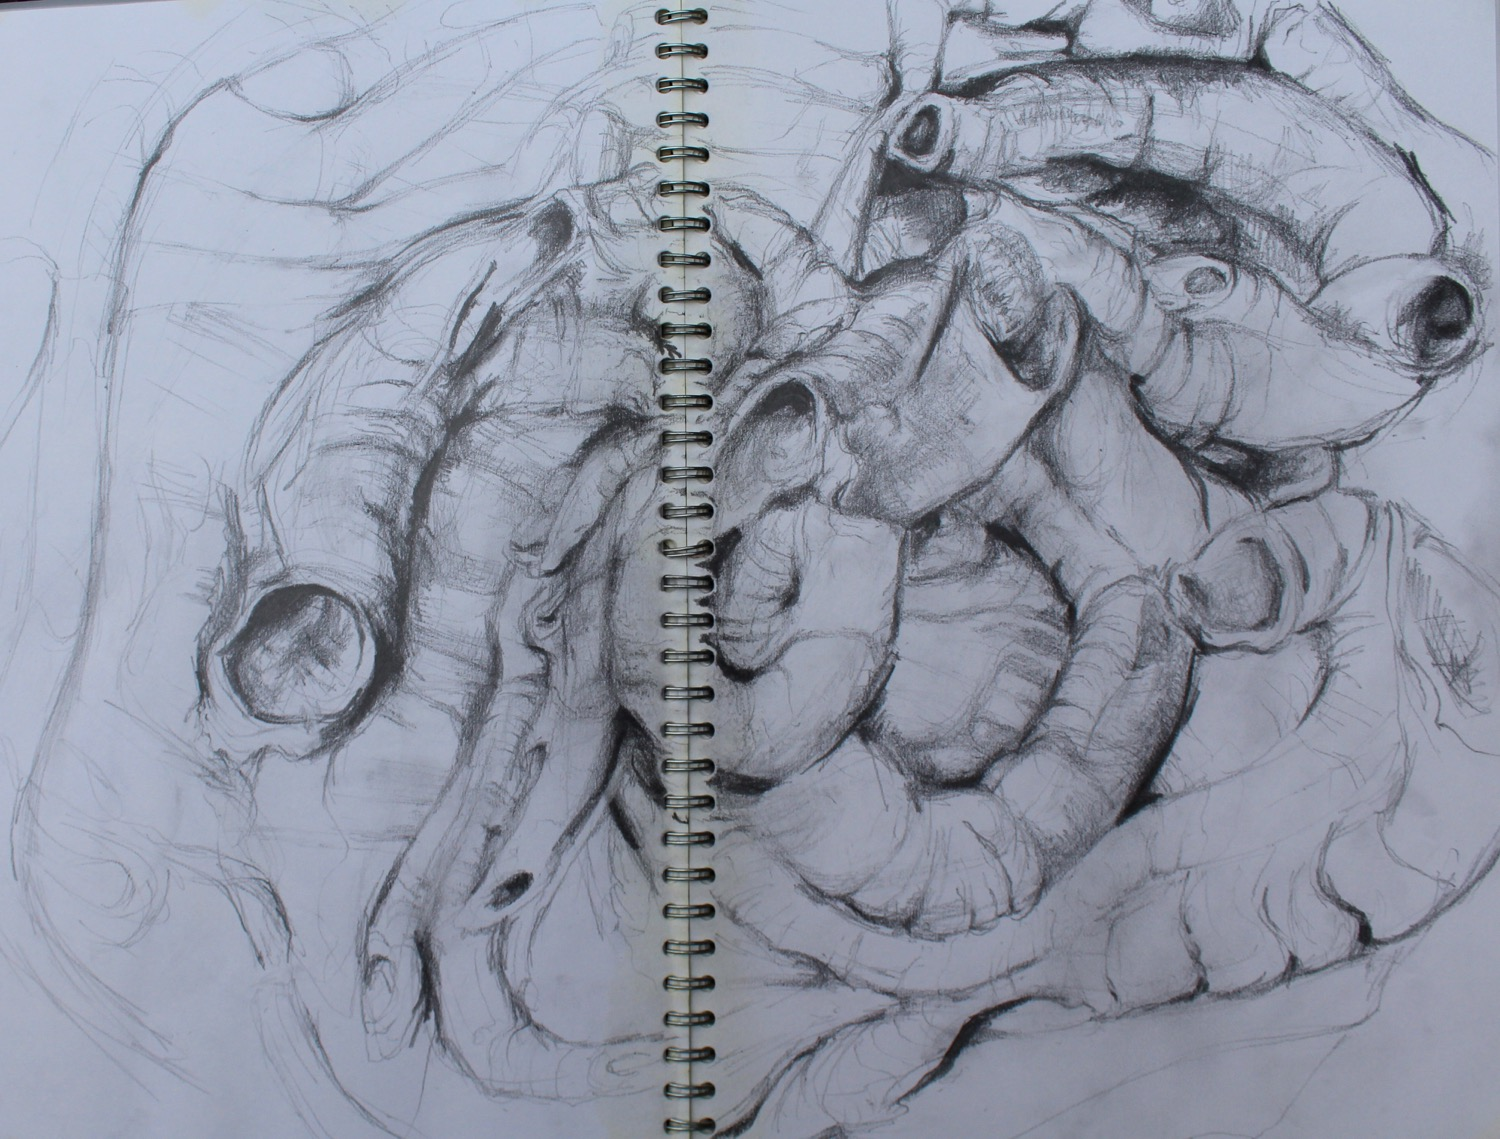 Worm casts, graphite drawing